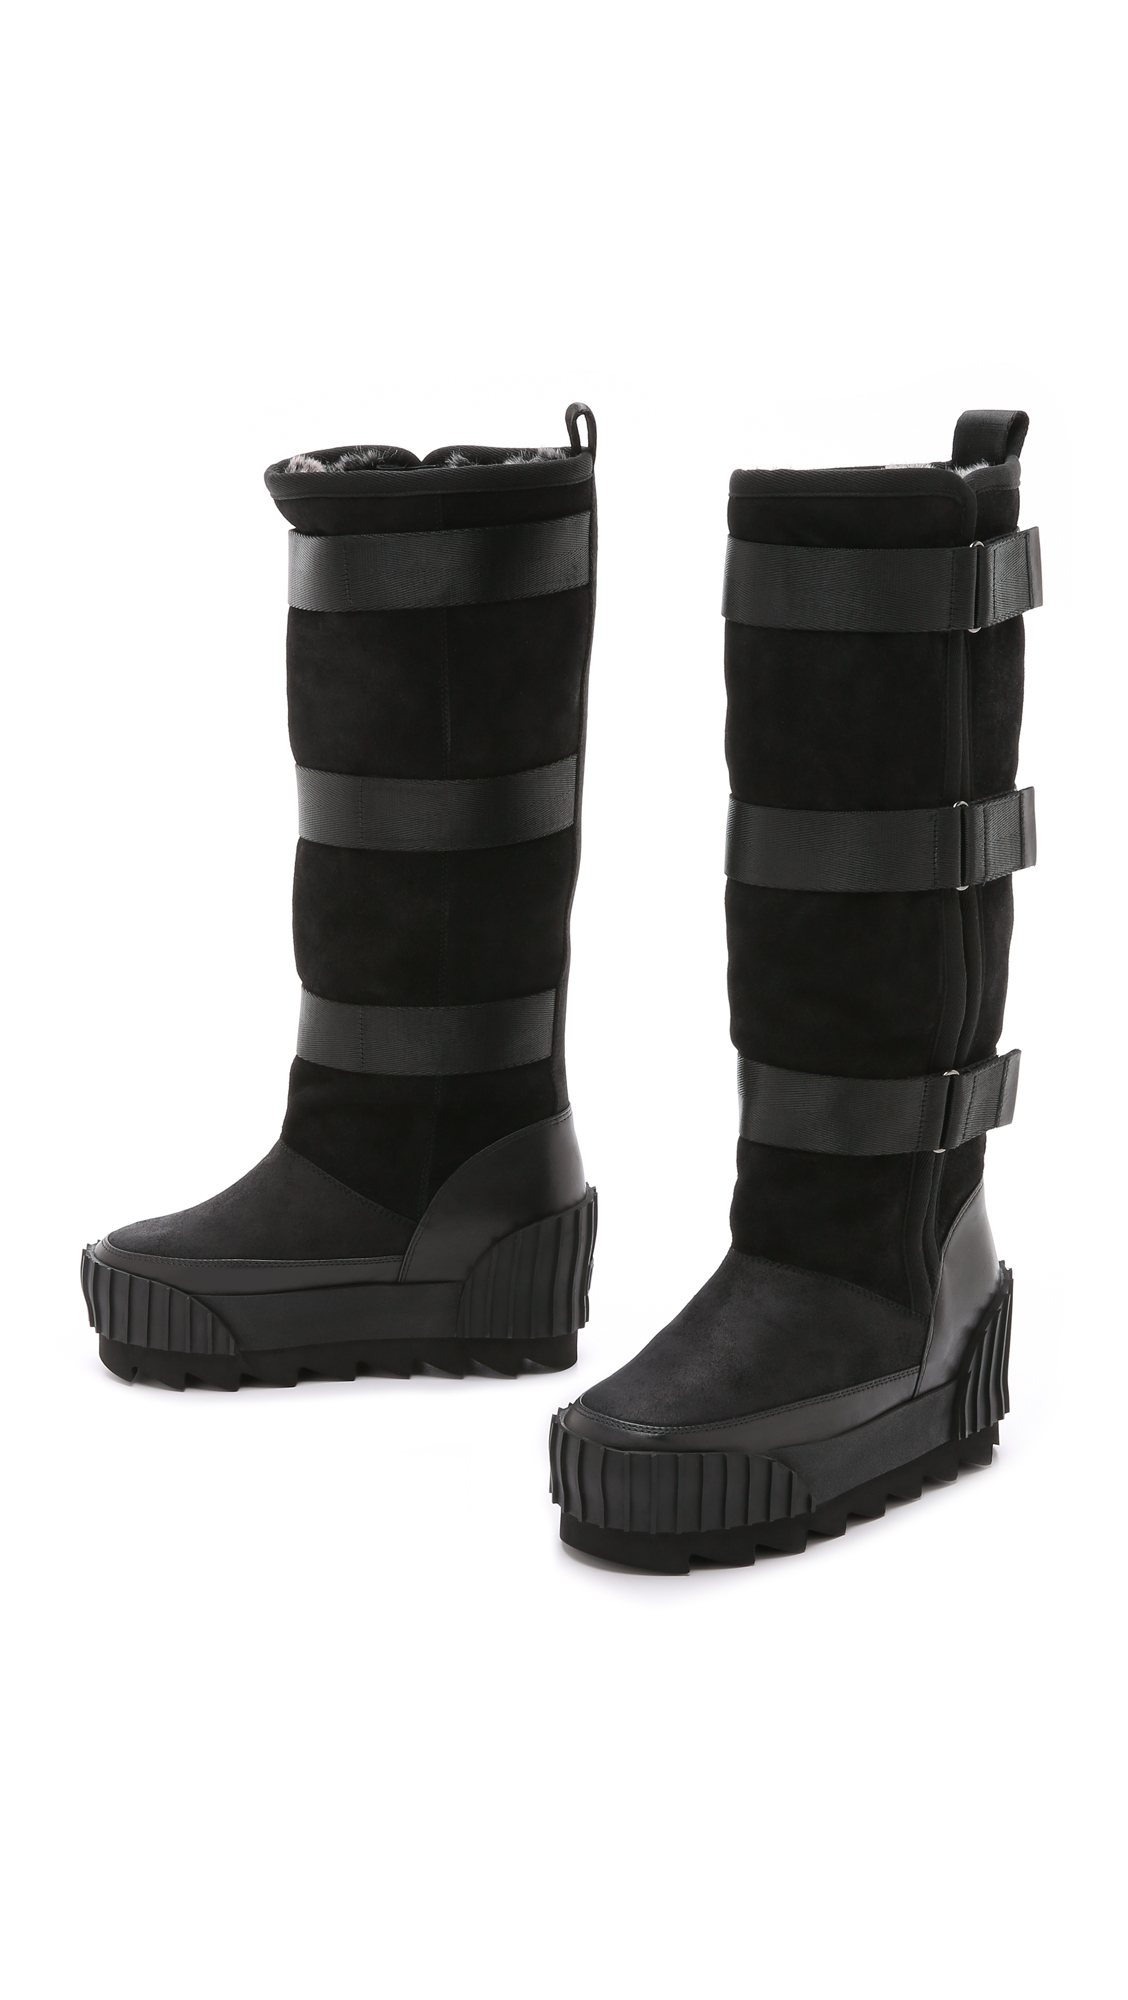 United Nude Faux Fur Lined Snow Boots - Black